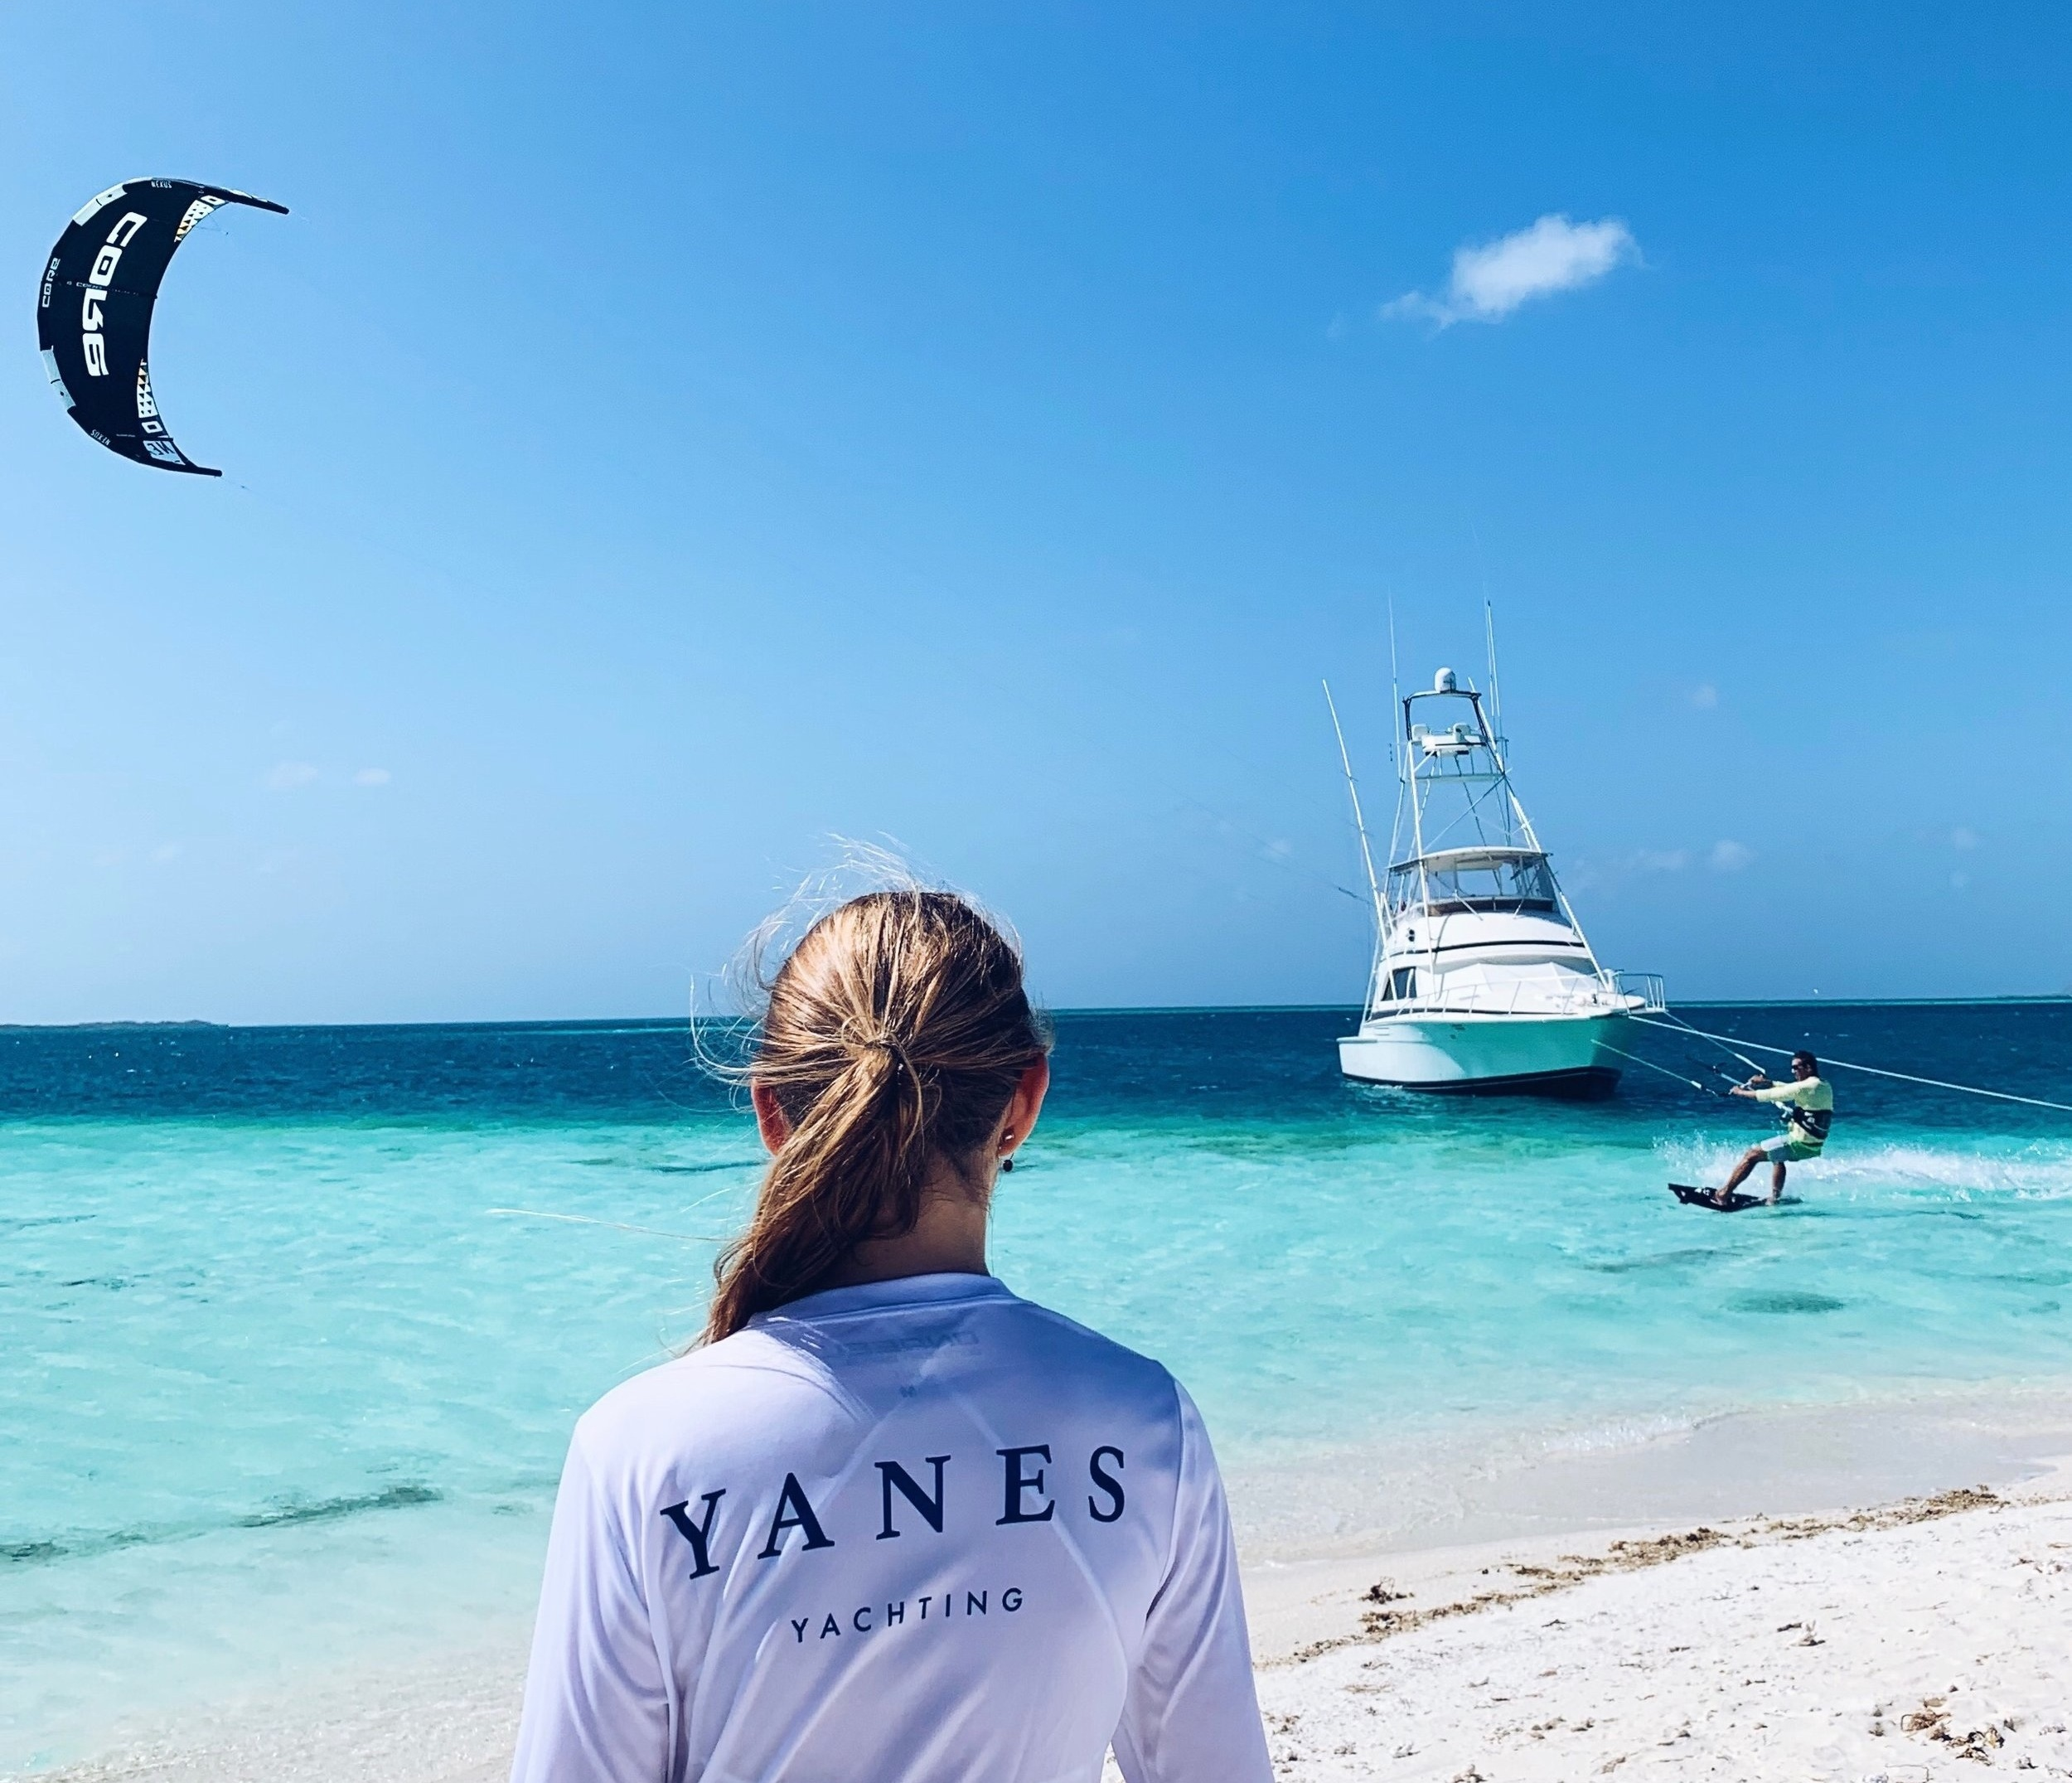 A SPACE TO DO WHAT YOU LOVE - When chartering with Yanes Yachting you will have the possibility to engage in the activities you love. We offer an array of possibilities from Fishing to Kitesurfing. Let us know what it is you need to make of your charter an ultimate experience.